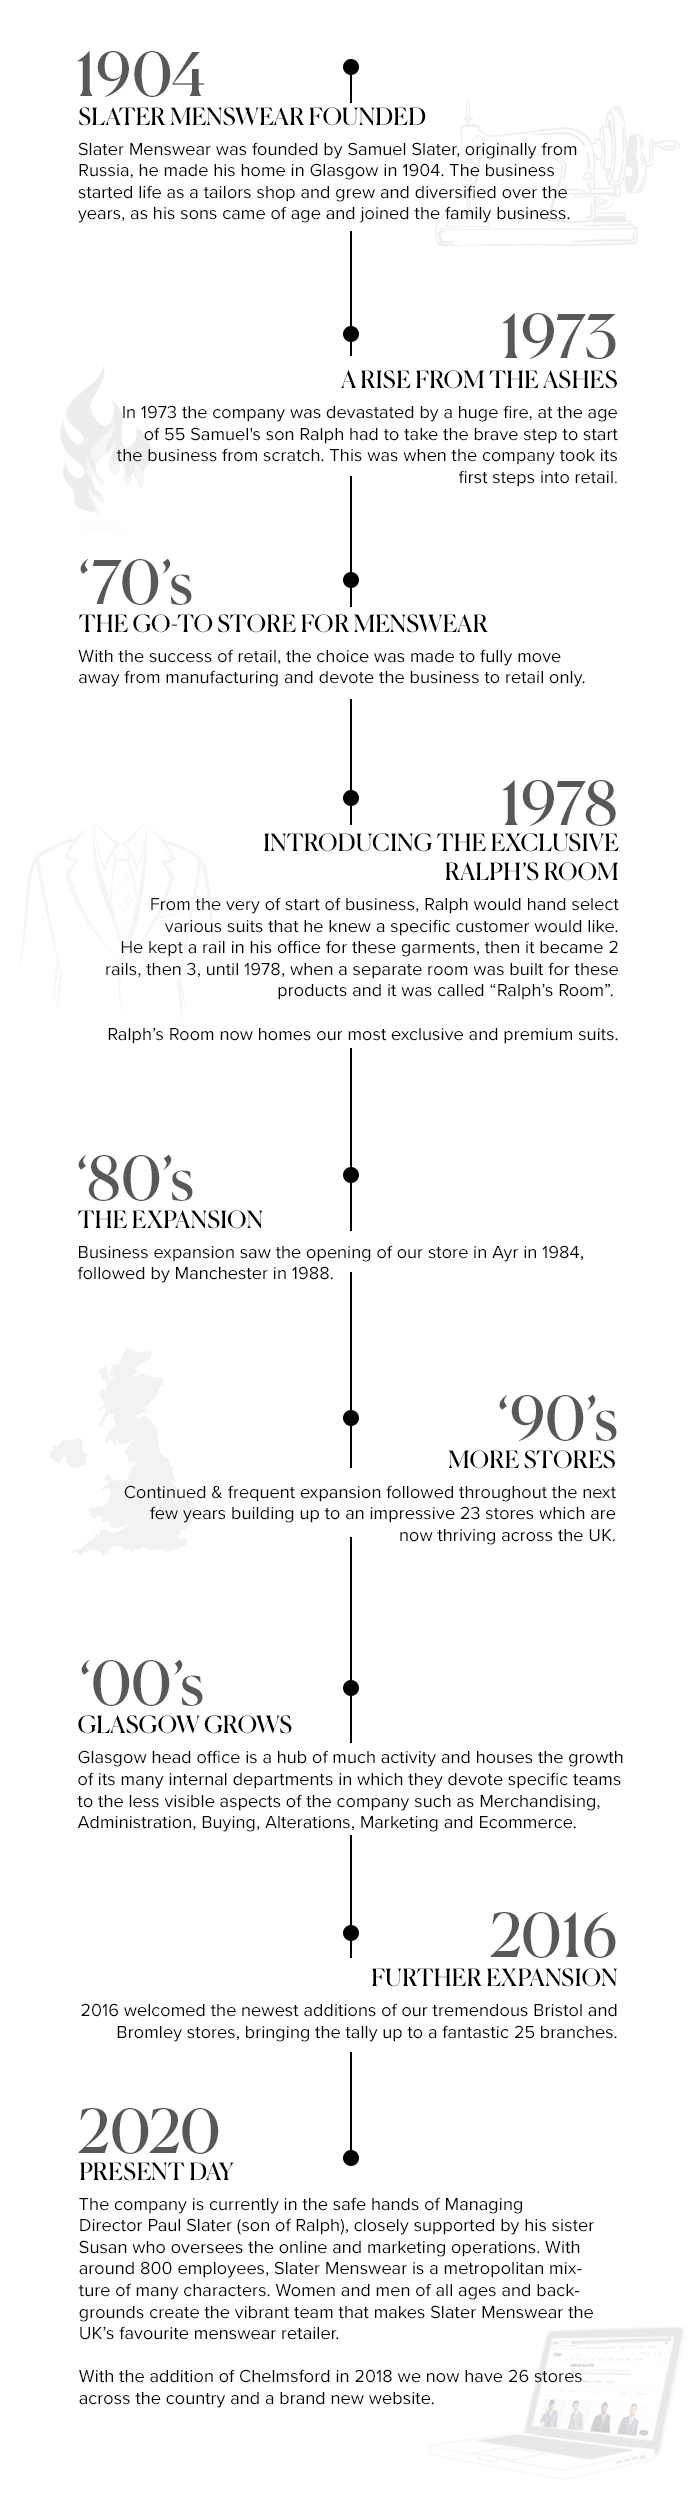 Slater menswear timeline of our business